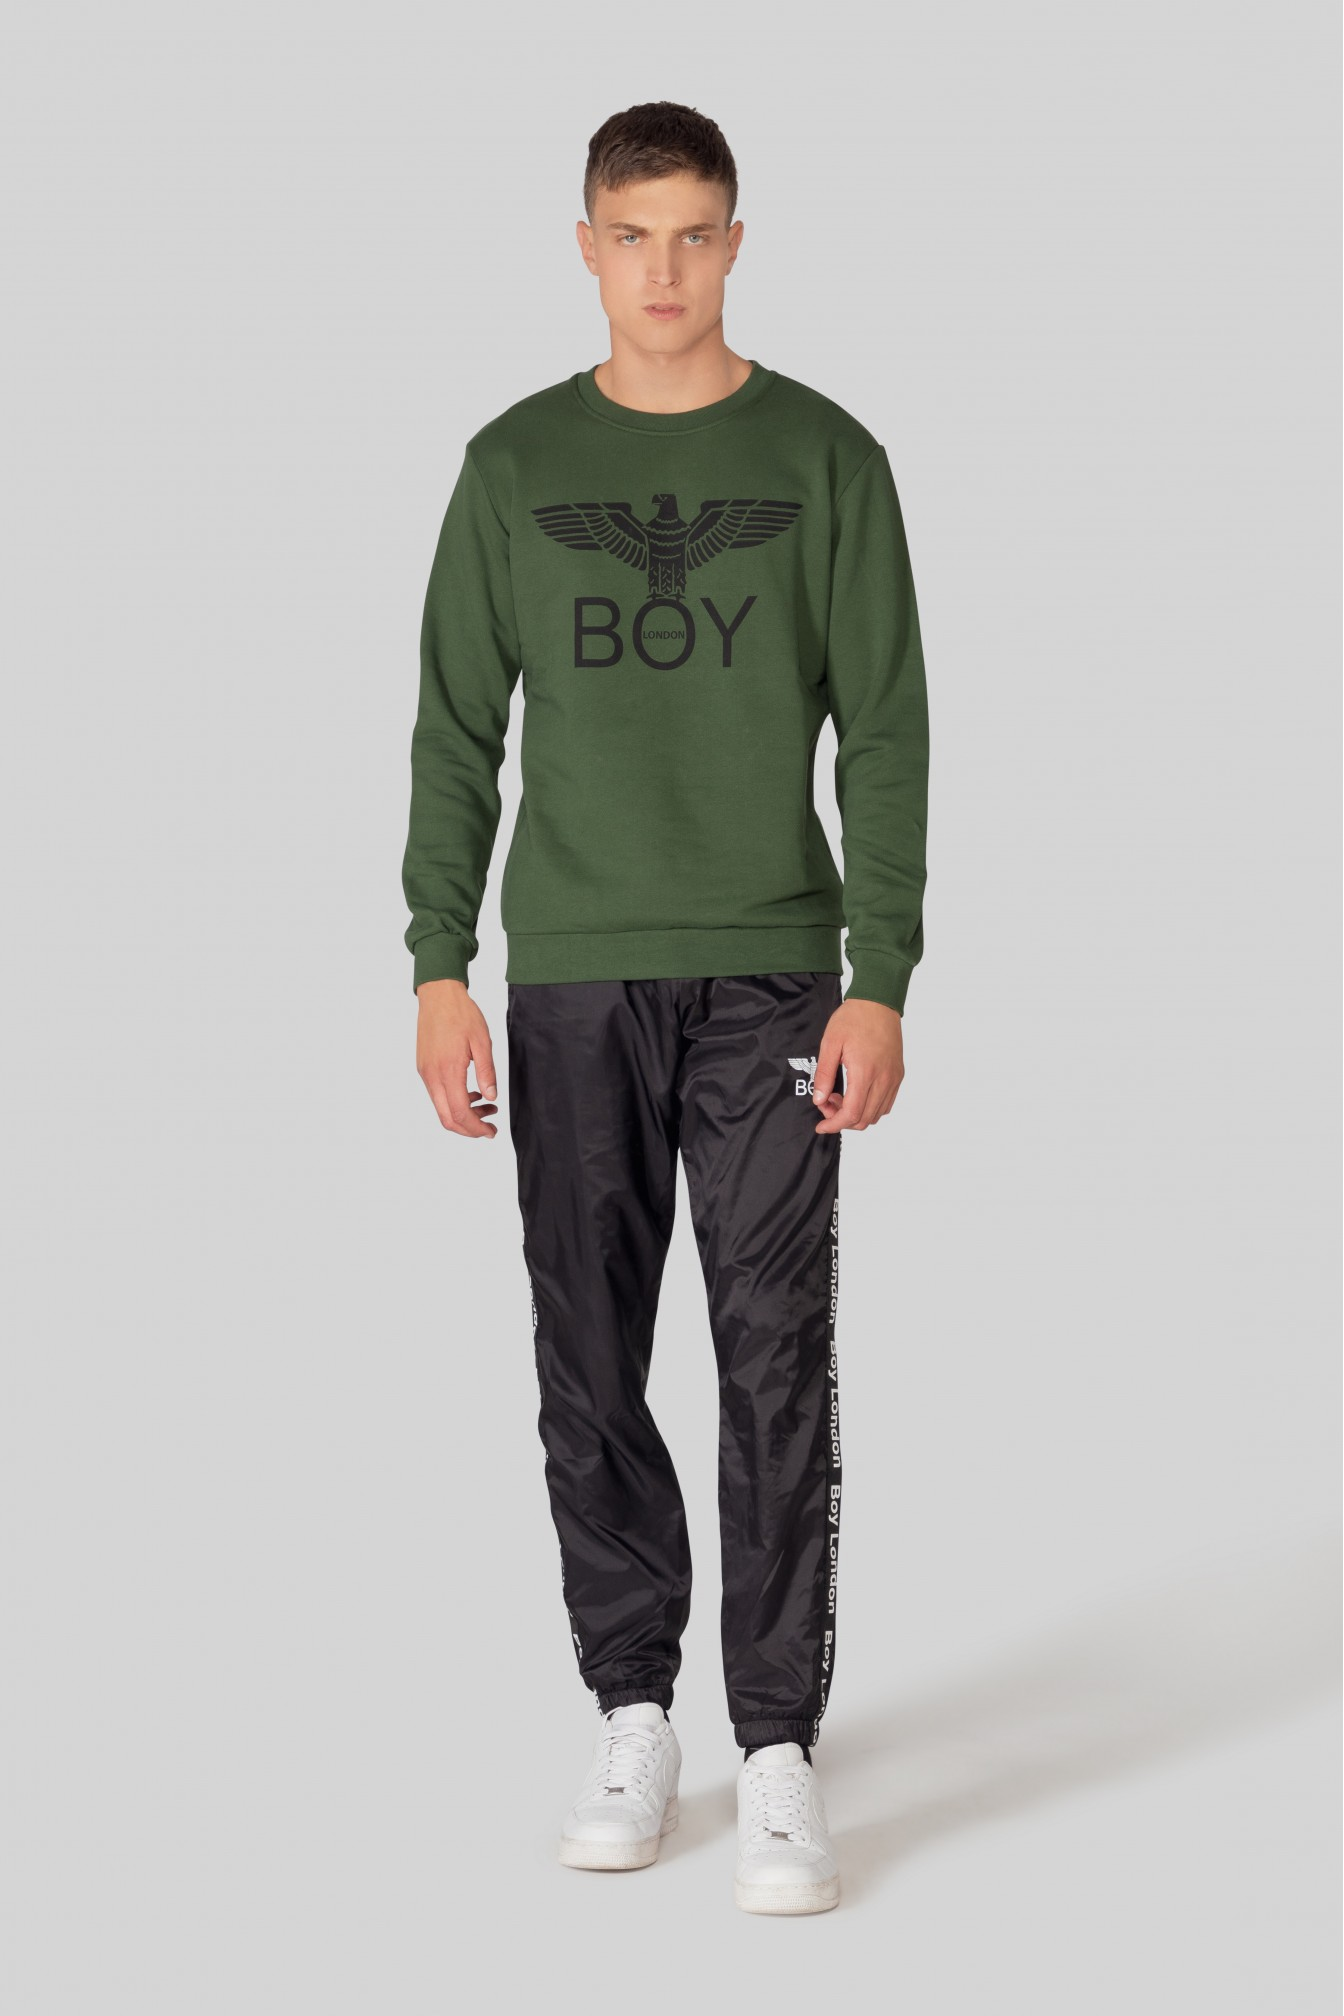 FELPA - BLU6700 - BOY LONDON